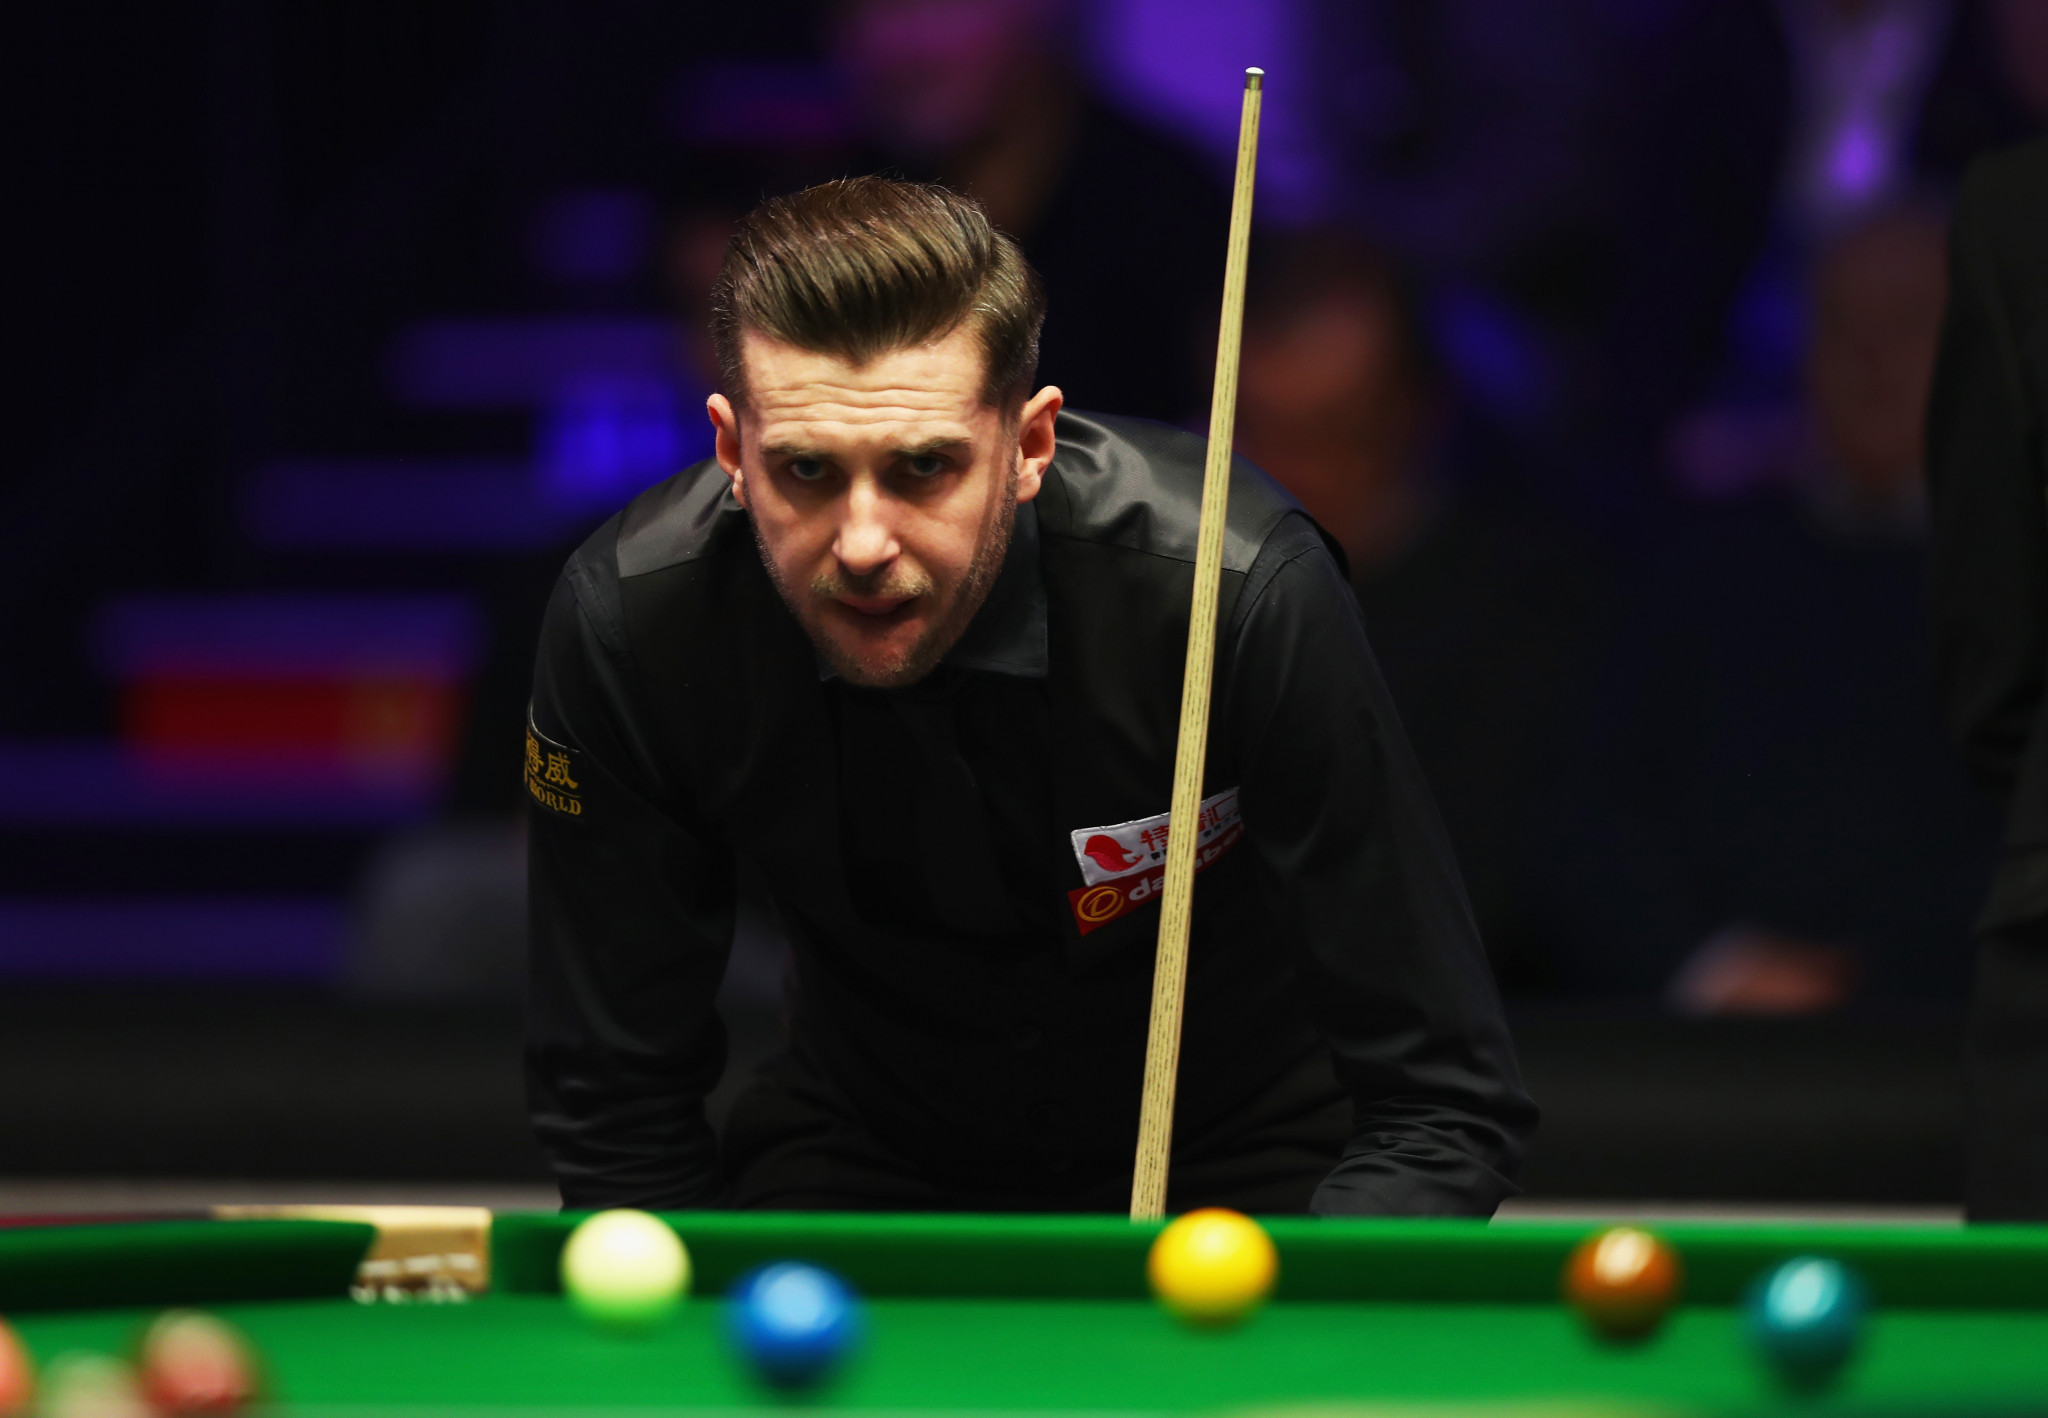 Selby crashes out of World Snooker Championship after shock defeat to Perry